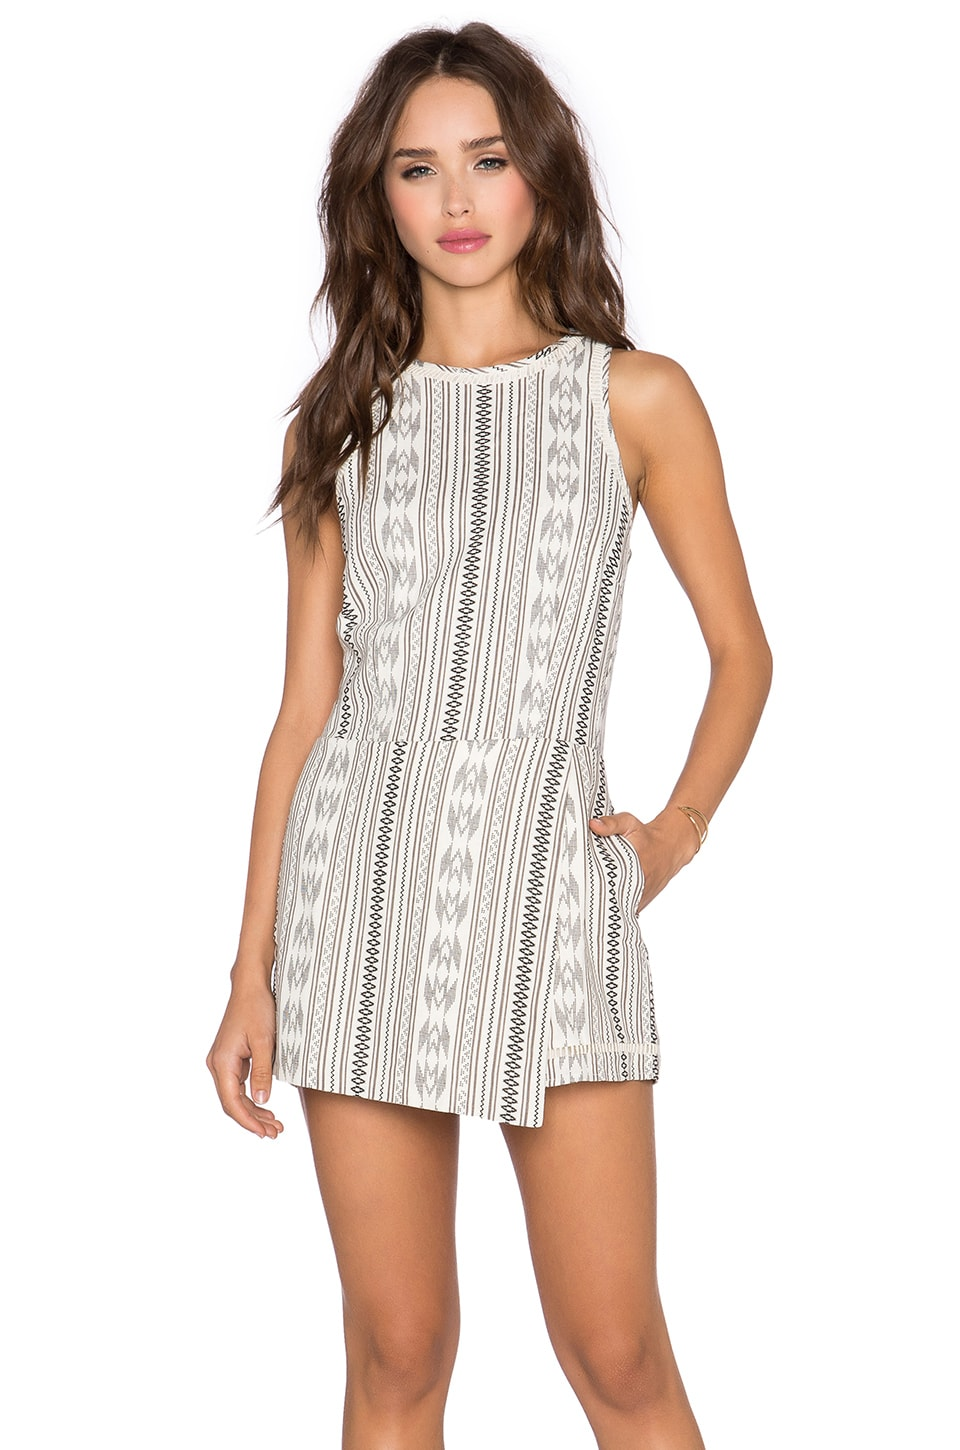 Greylin Pria Cut-Out Skirt Romper in Grey